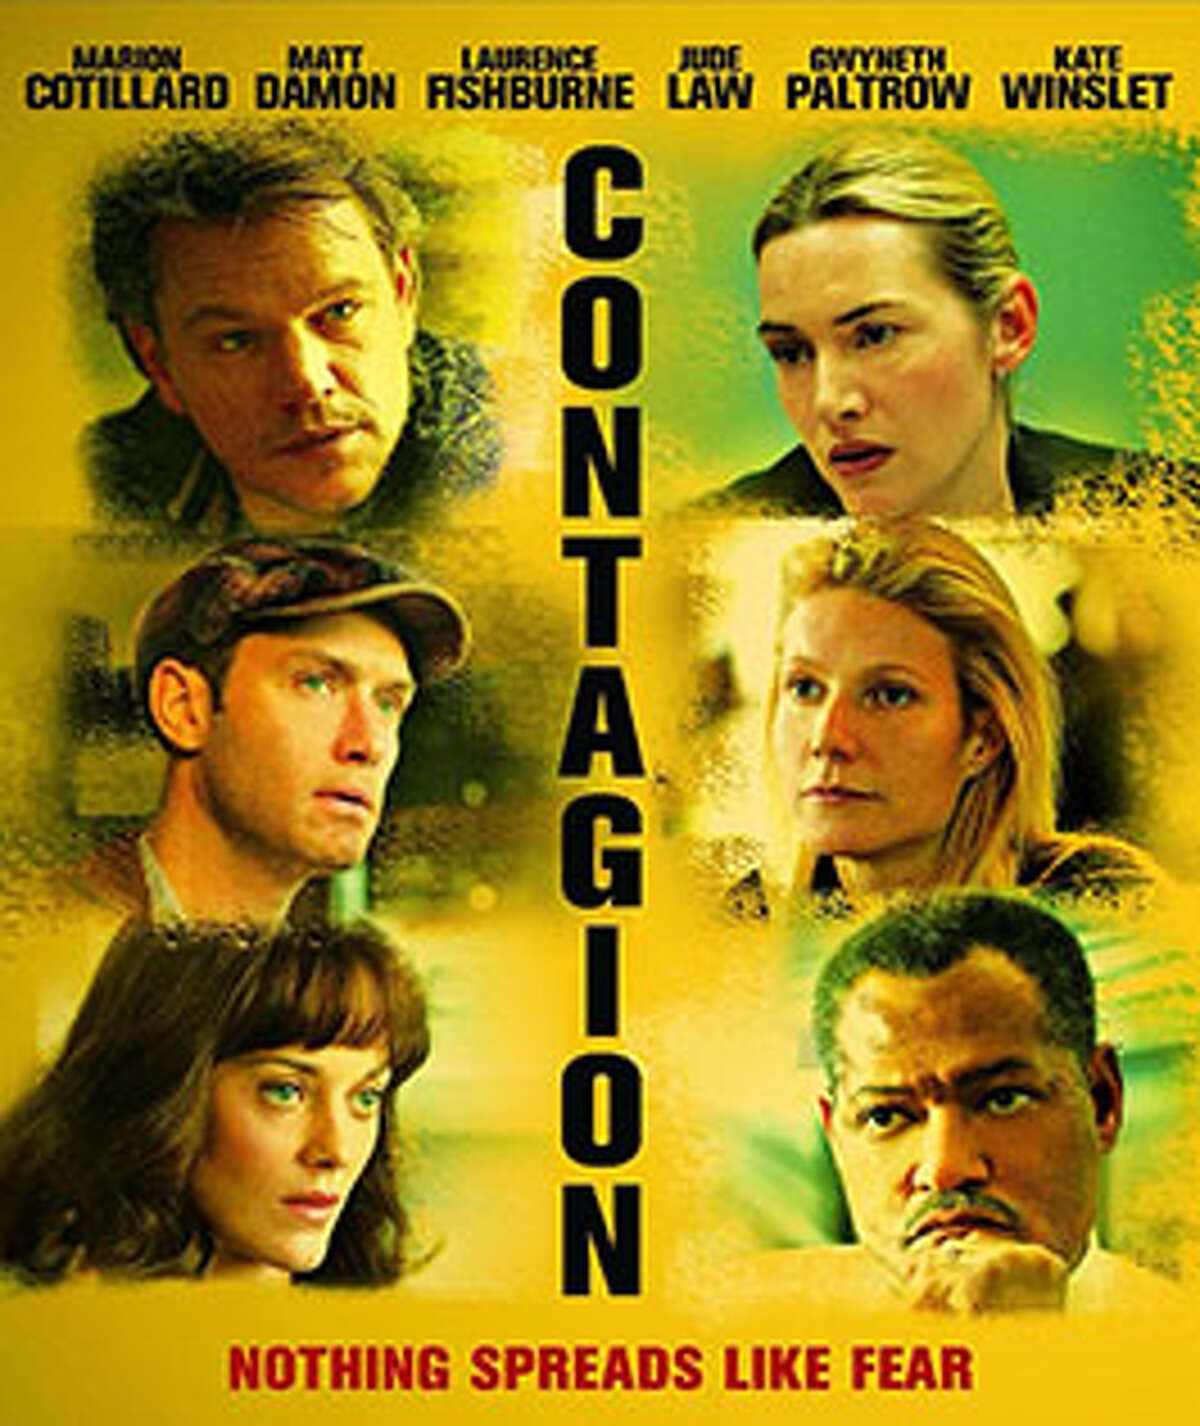 Contagion (2011)Stephen Soderberg's 2011 thriller, starring an ensemble cast including Gwyneth Platrow, Matt Damon, Marillon Cotillard and Lawrence Fishburne, has already been the subject of viral articles and an excellent video by Dan Olson, so you probably knew it was going to show up on this list. That's why it's first. Now you can spend the rest of the article being surprised.I can't find a movie more realistic, or anticipatory, than